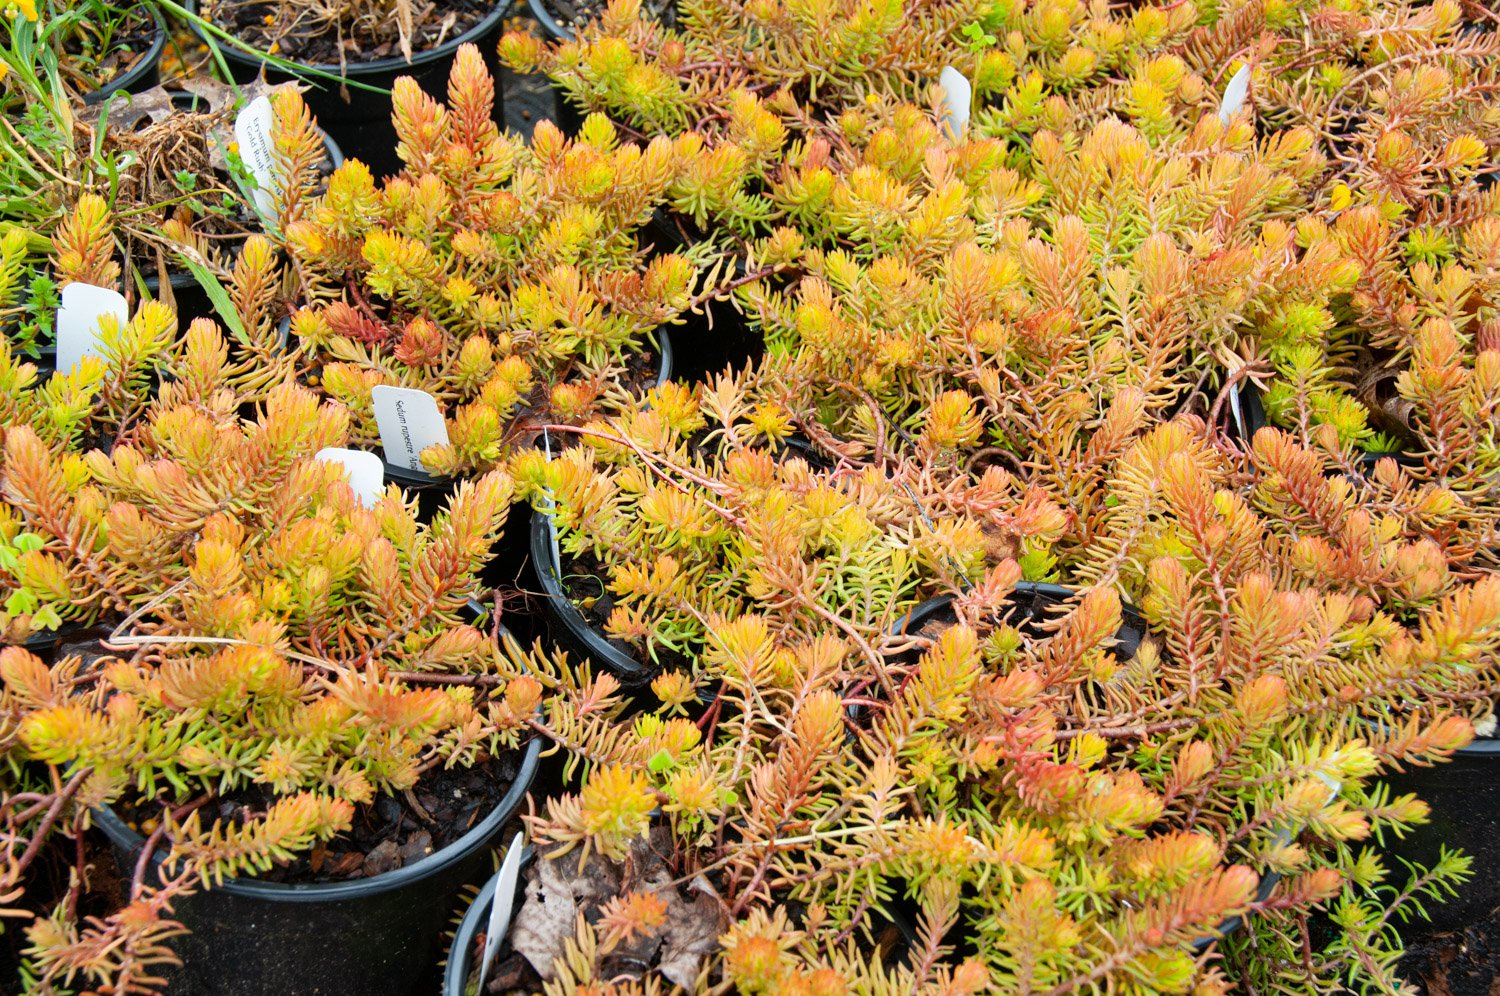 Coppery stems of Sedum 'Angelina' in cool weather